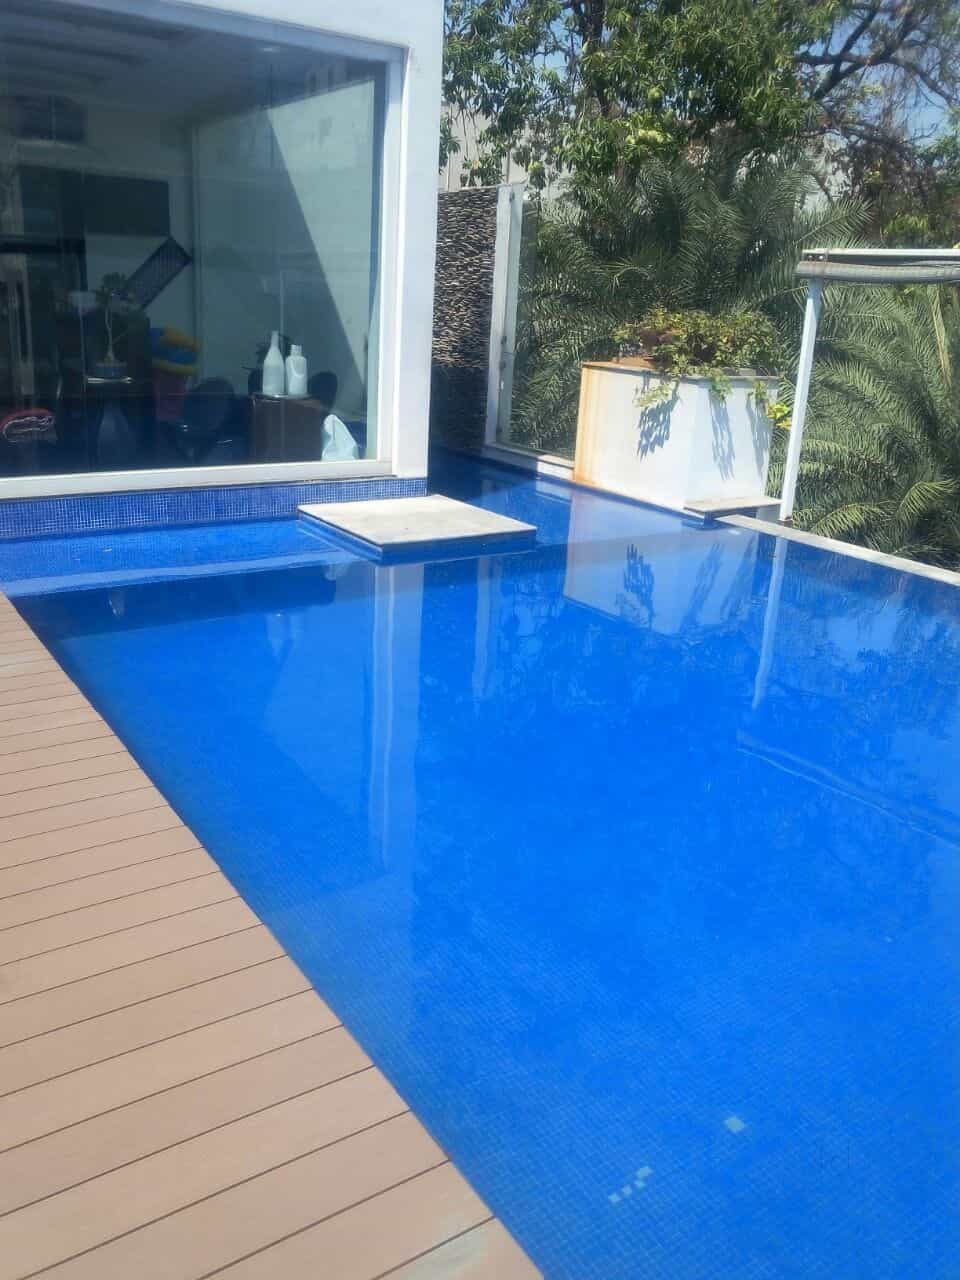 Lovely Designer Pools And Spa, Madhavaram Milk Colony   Designer Pools U0026 Spa    Swimming Pool Construction Contractors In Chennai   Justdial